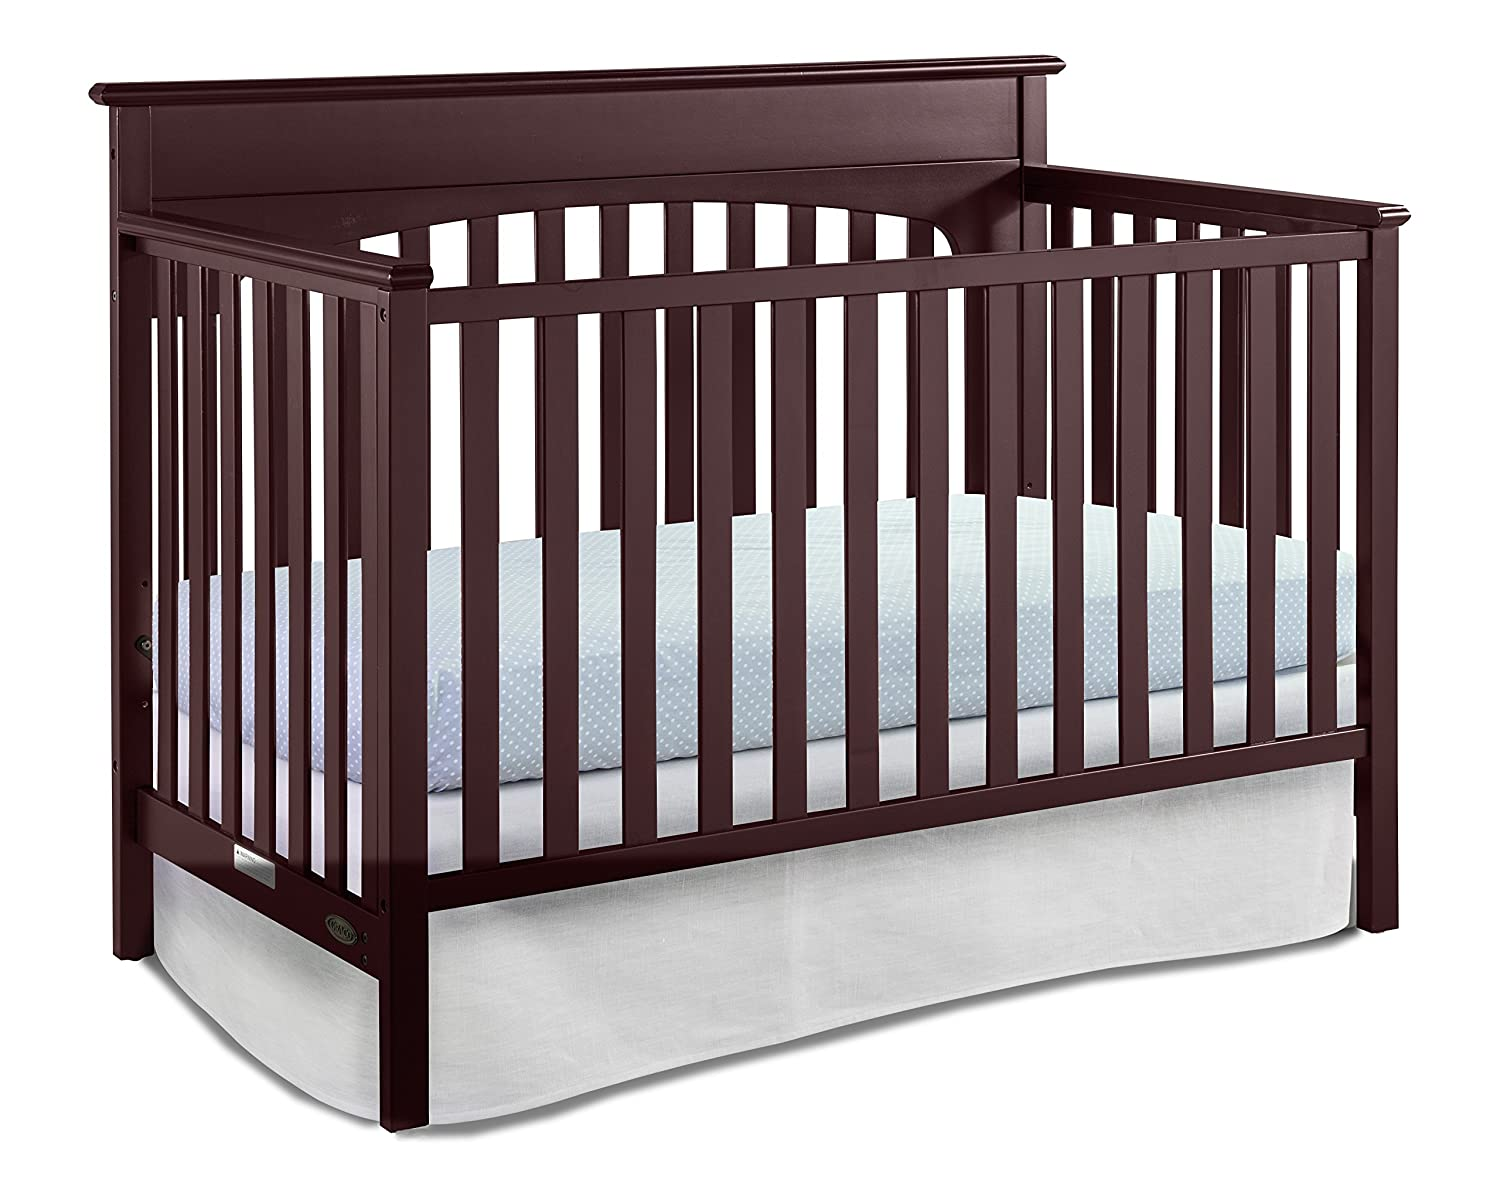 Graco Lauren Congreenible Crib, Cherry